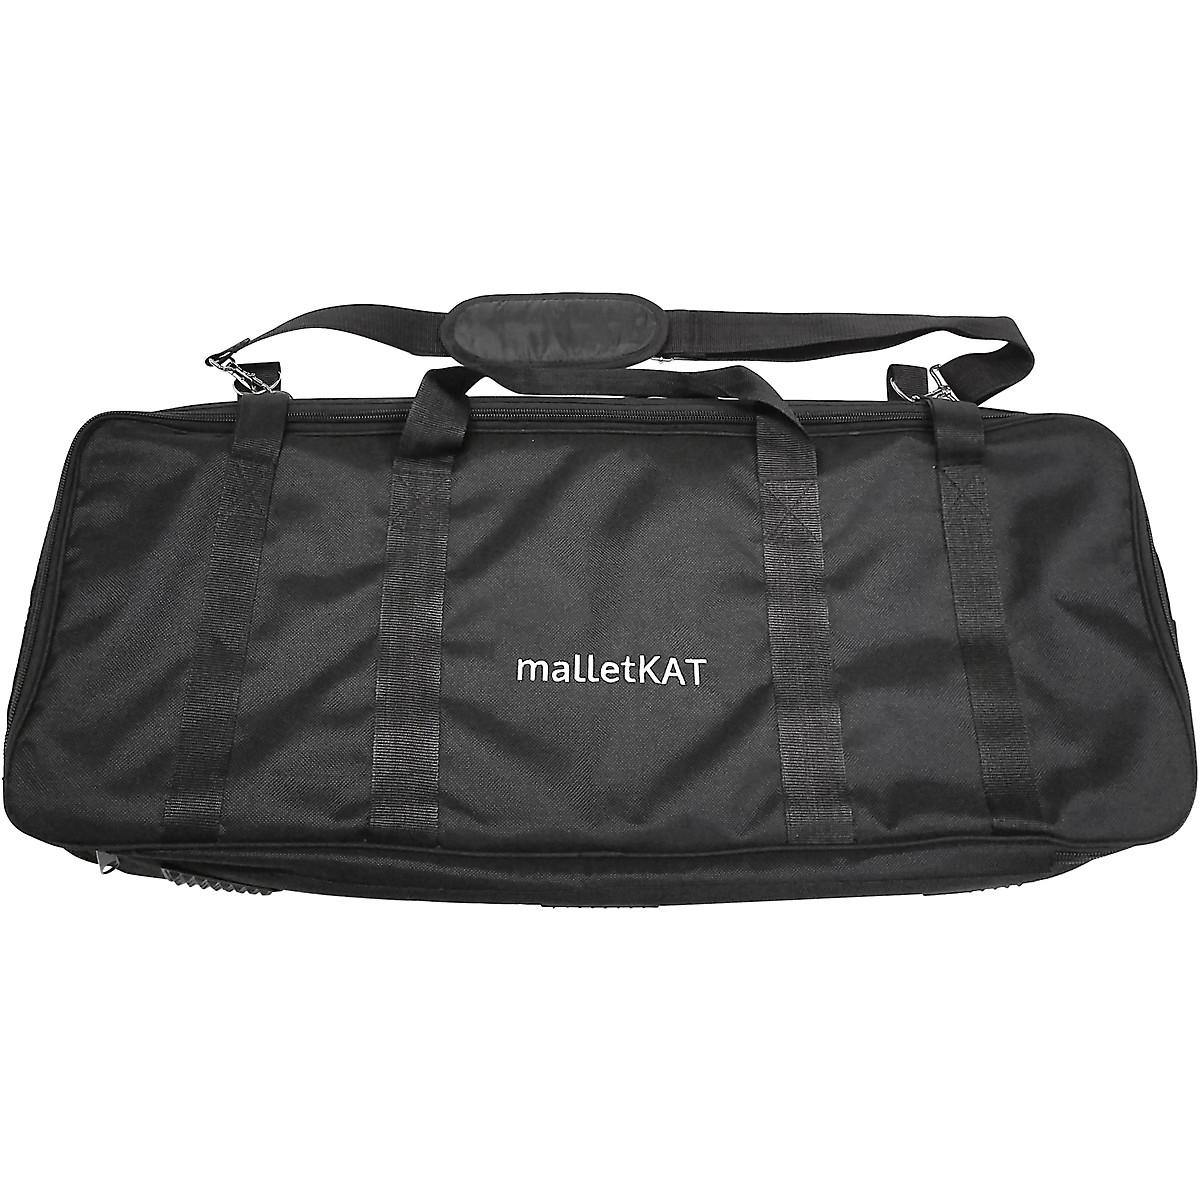 KAT Percussion Softcase for MalletKAT Express